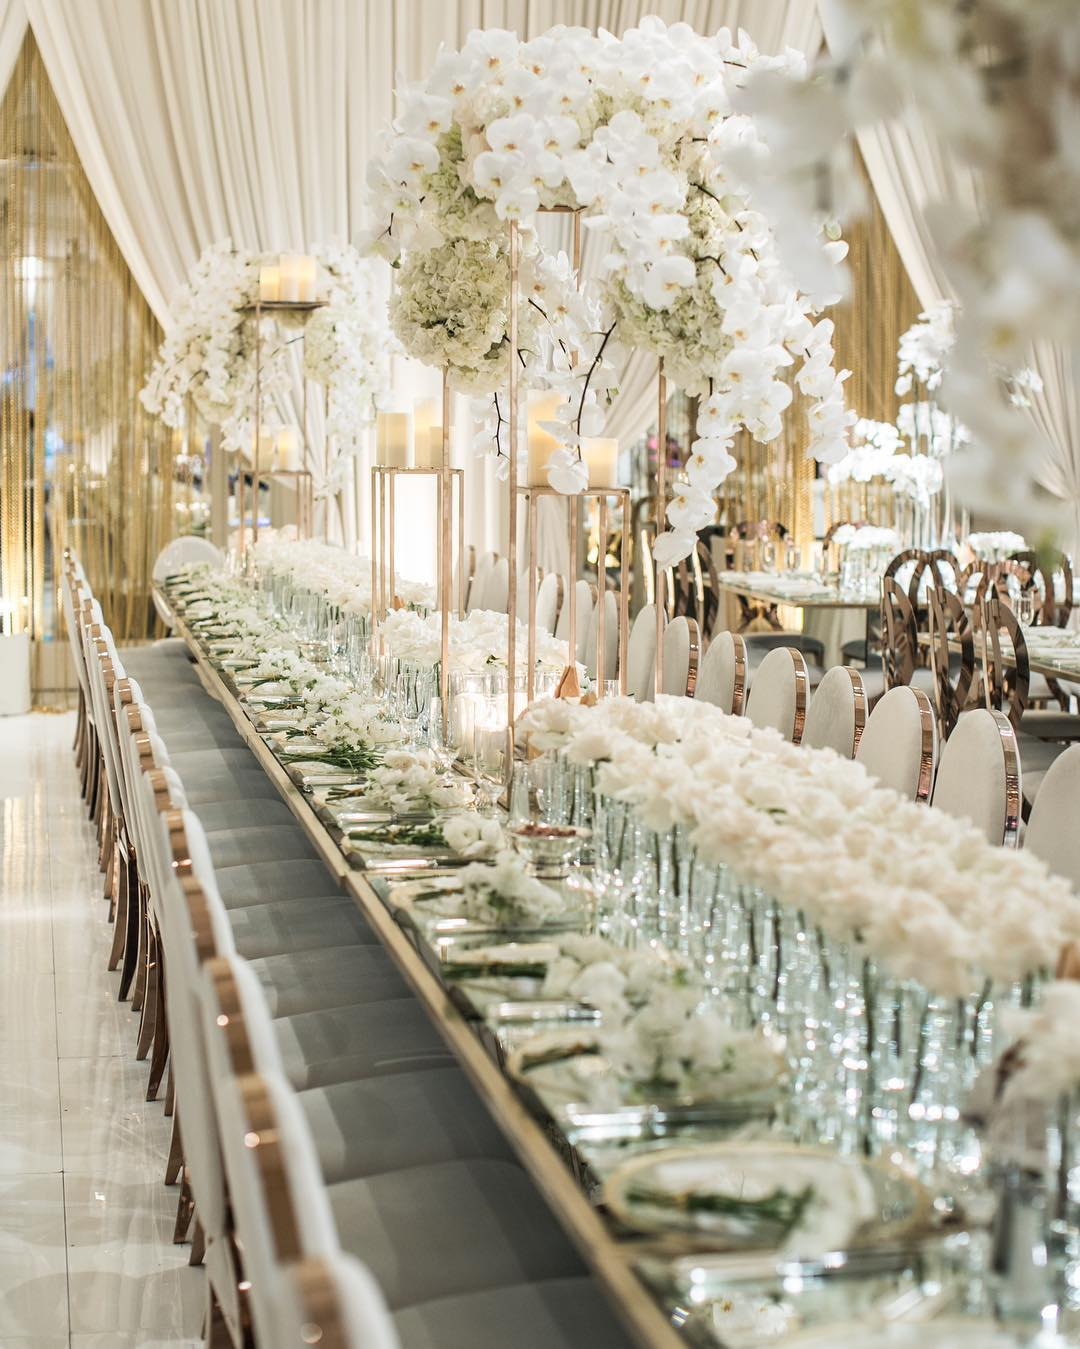 White Luxury Wedding Decor With Wonderful and Beautiful Decoration Ideas